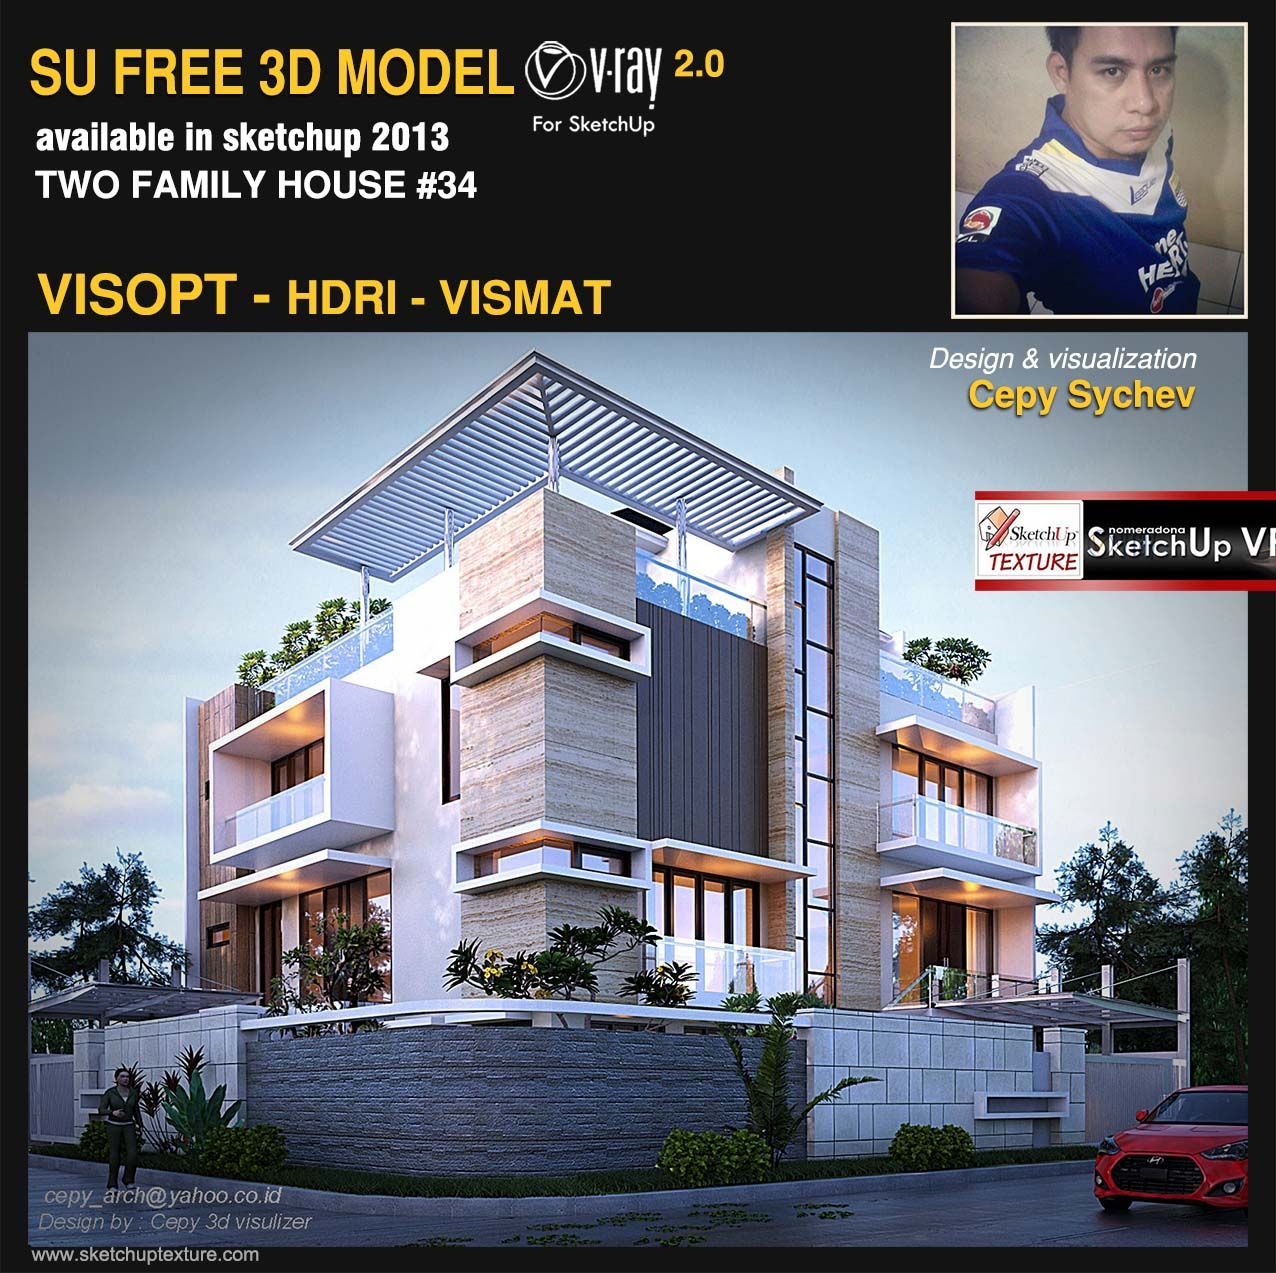 Home Design Software Sketchup: Free Sketchup Model Two Family House #34 Visopt And Vray